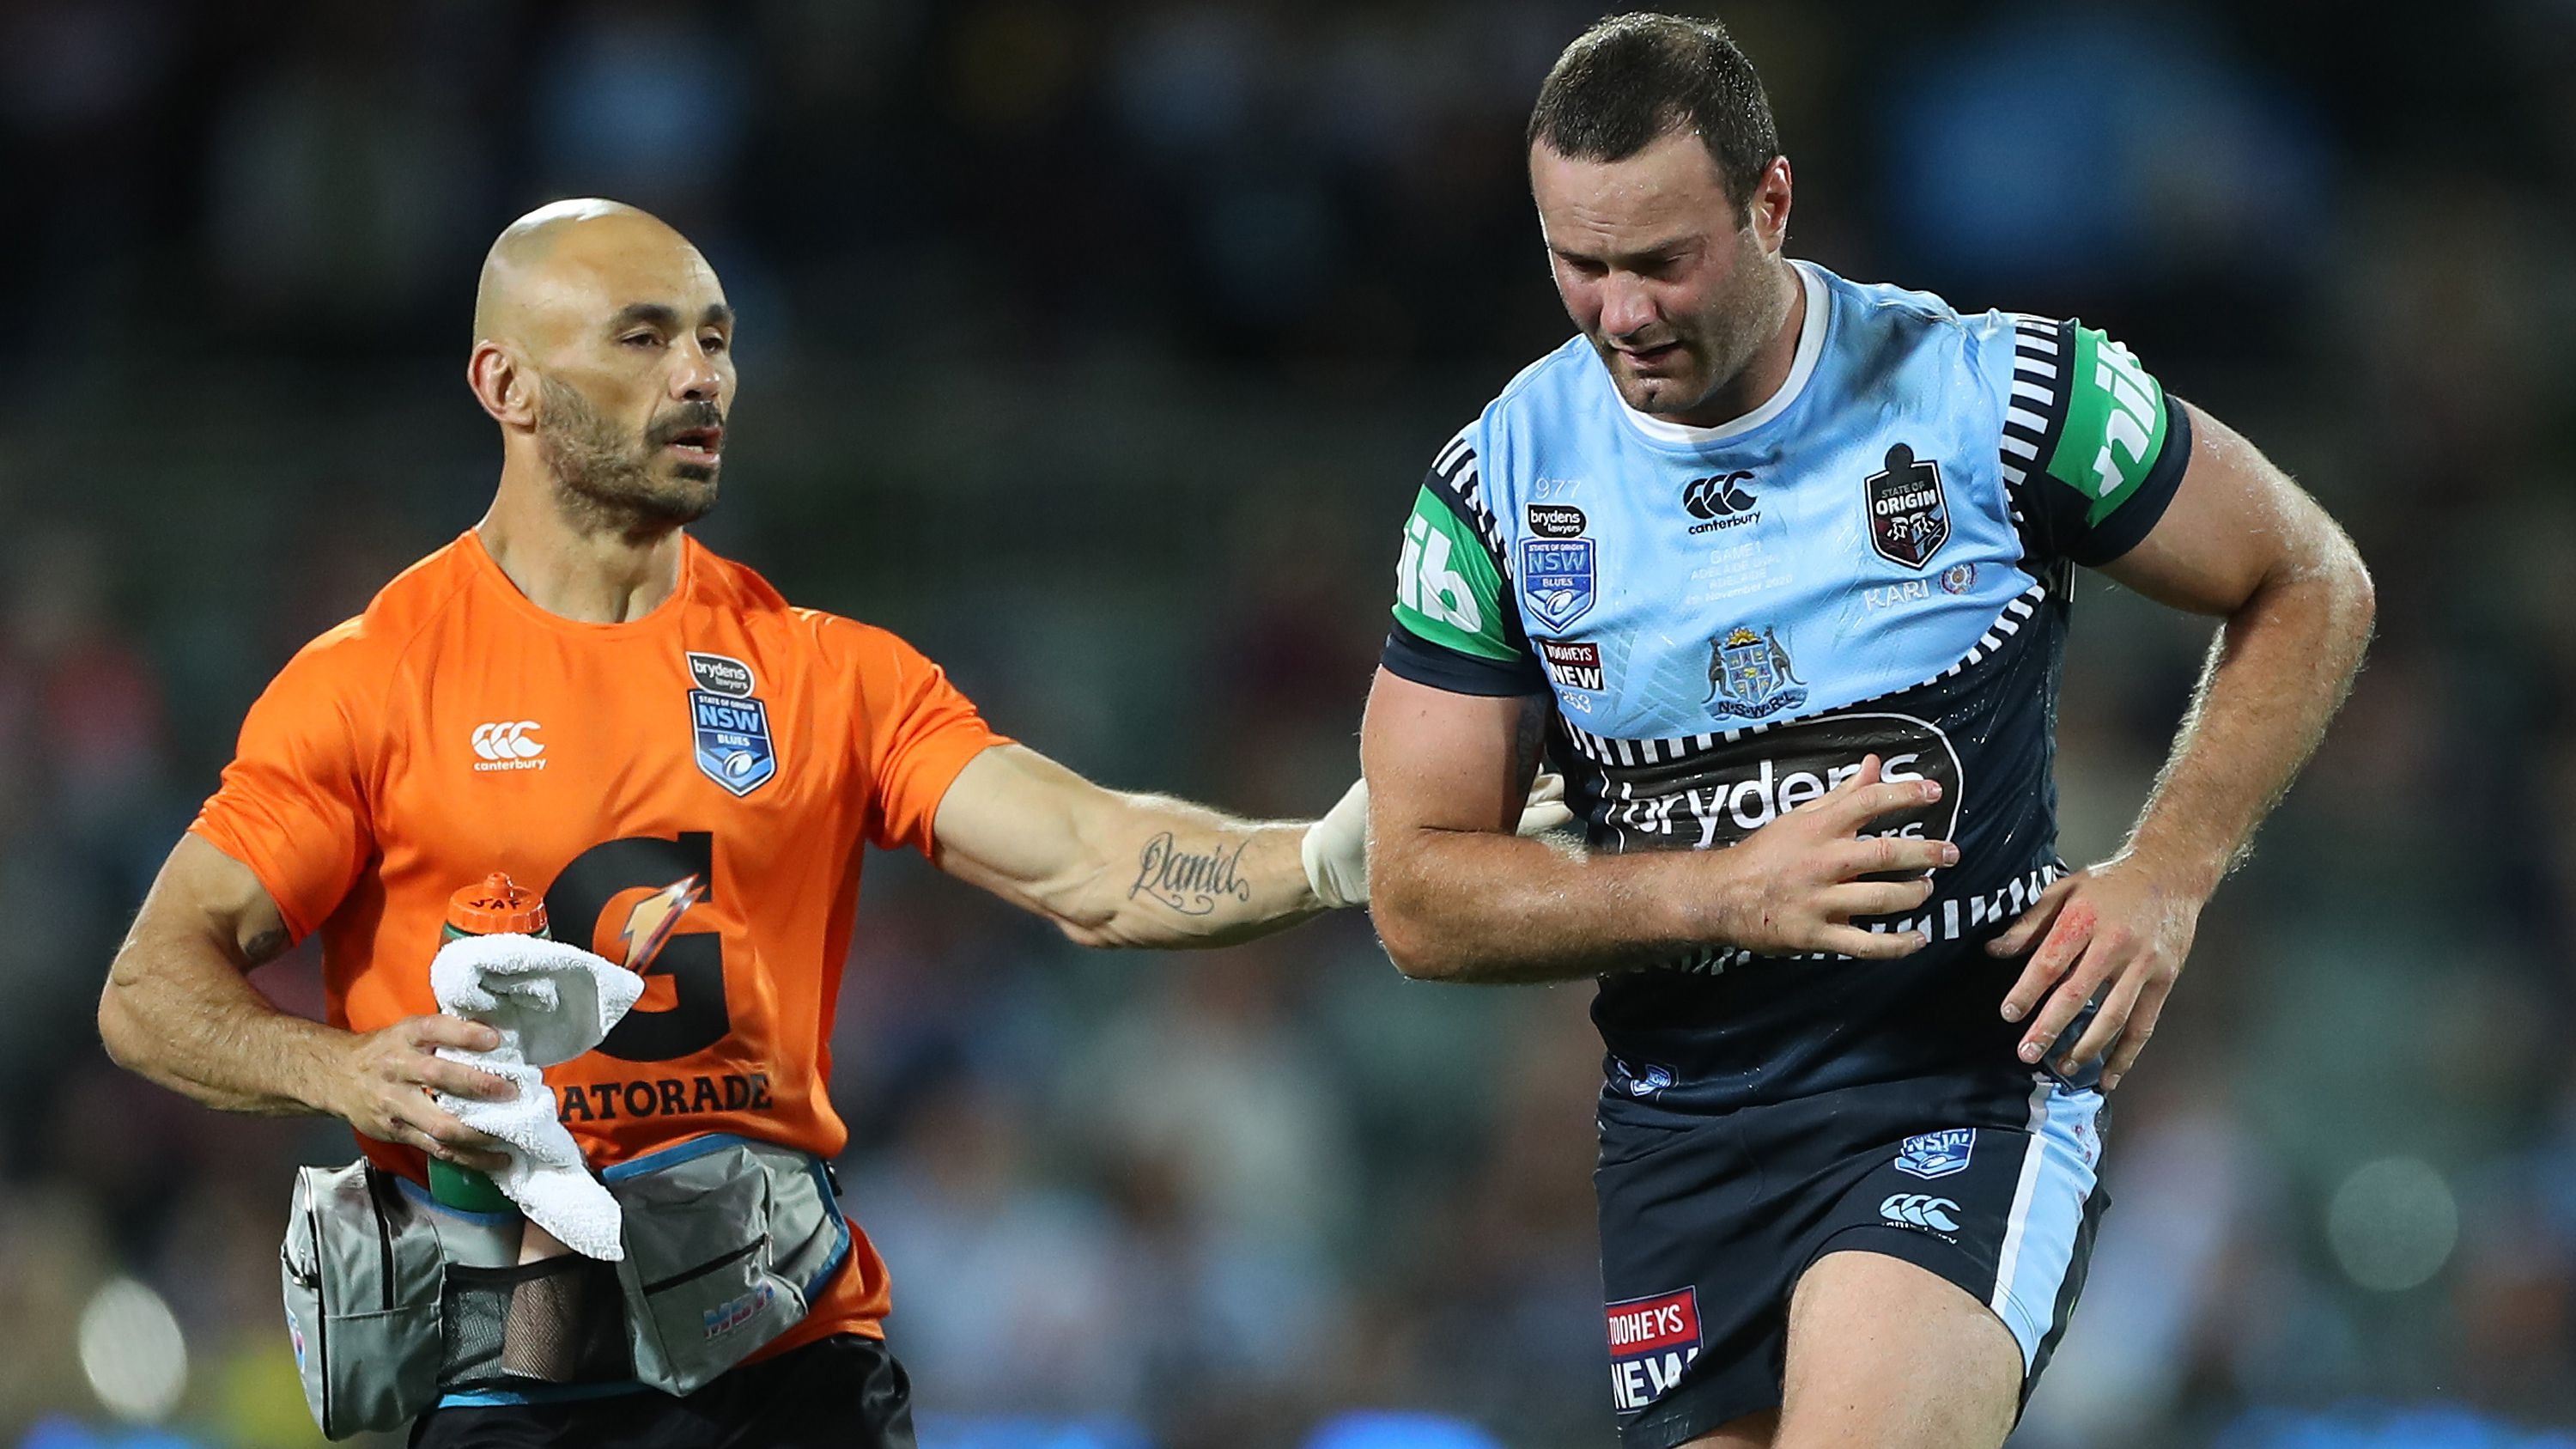 'If it wasn't concussion, what was it?': Fitzy rips NSW Blues over Boyd Cordner head injury